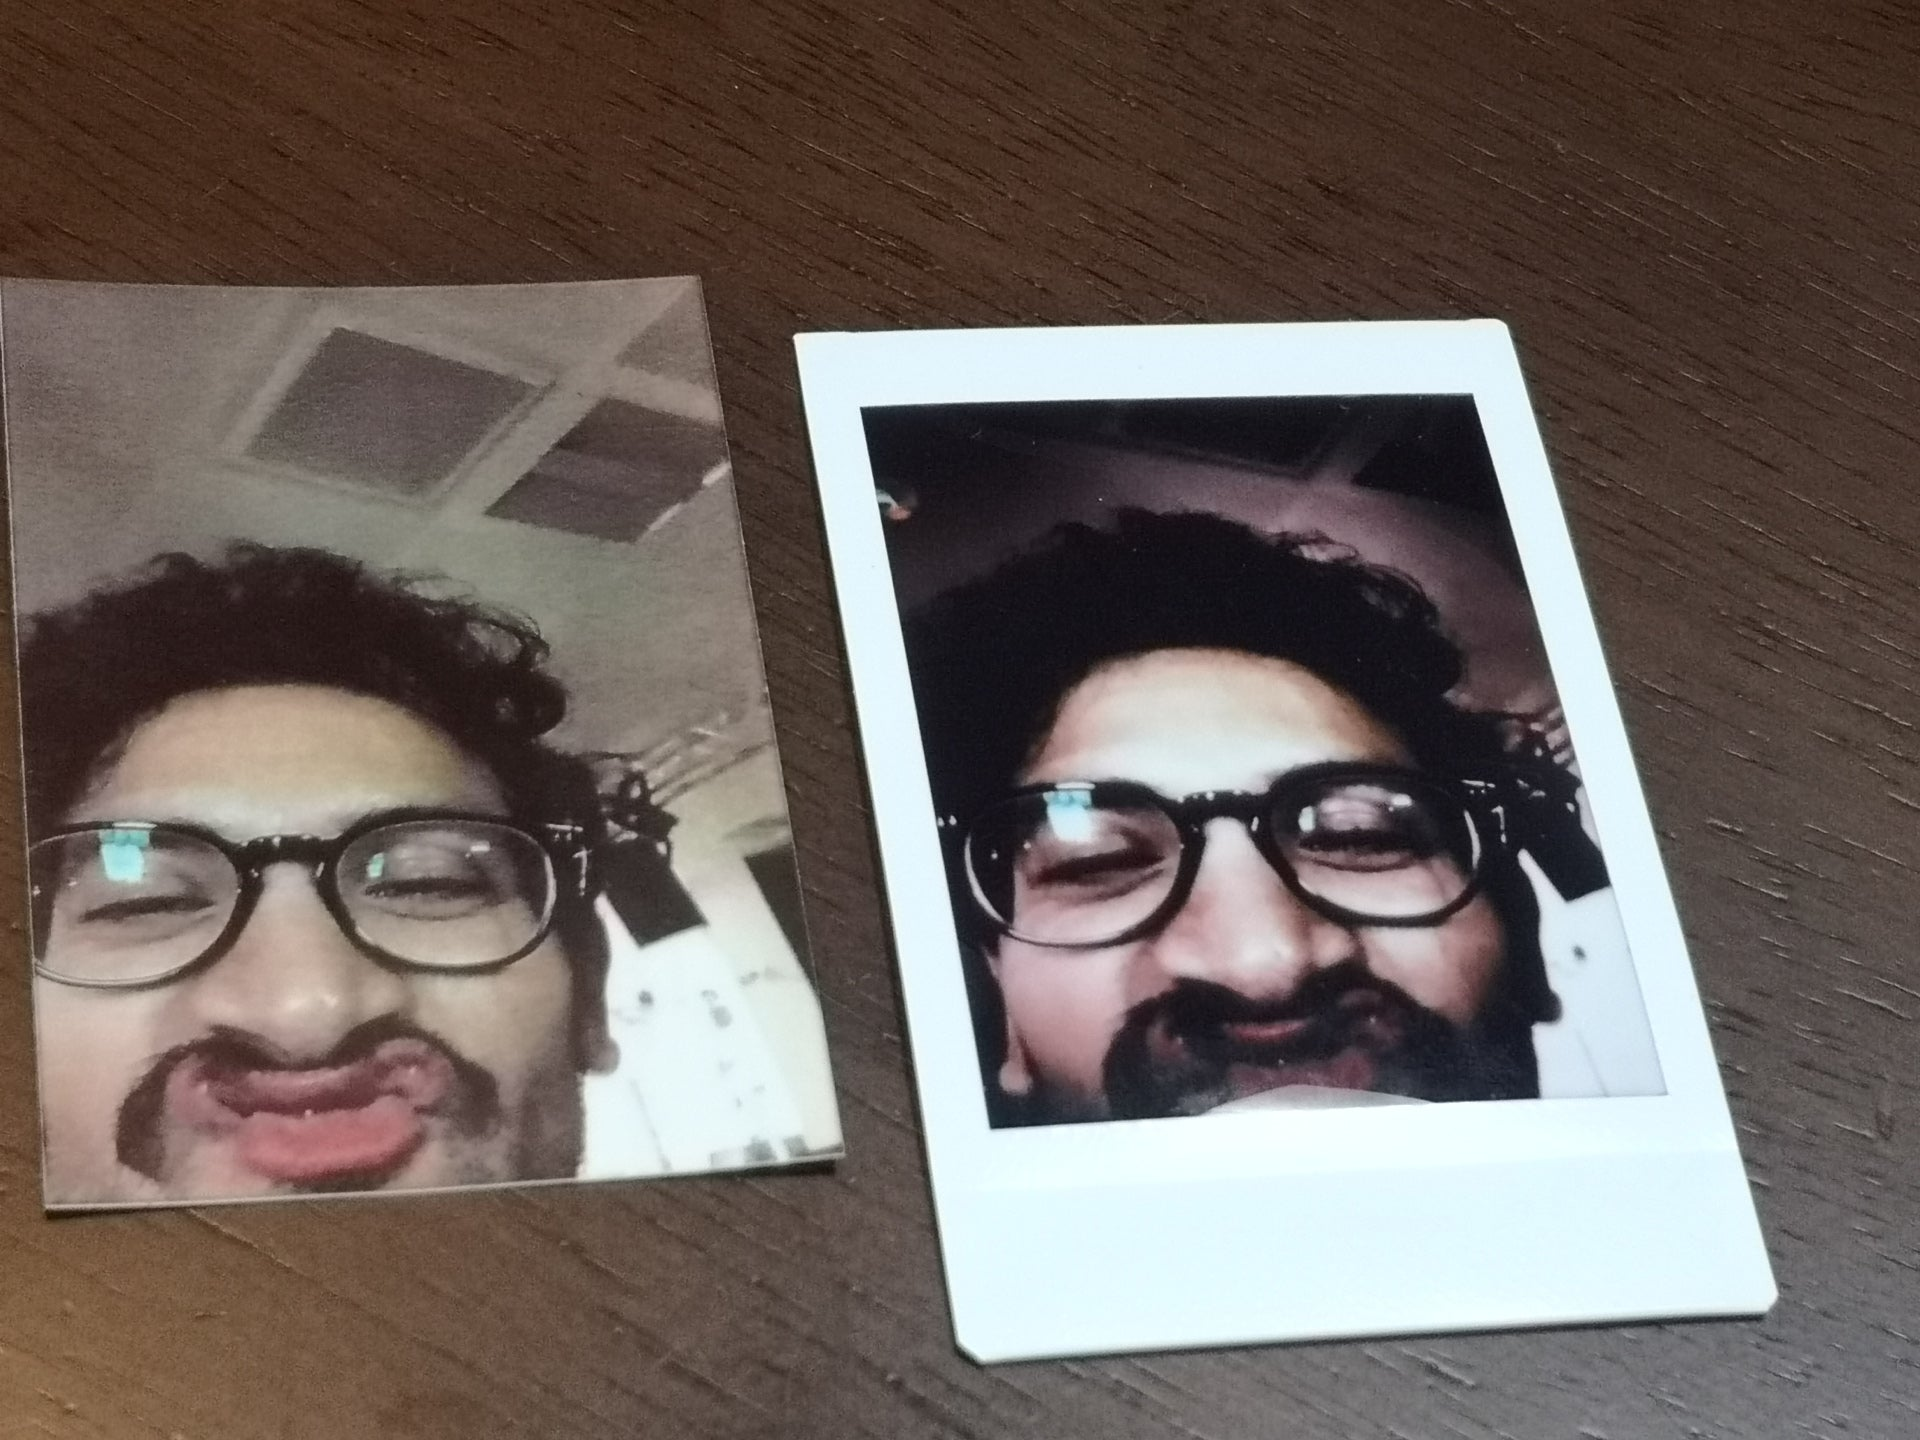 hp sprocket 2nd edition photo quality